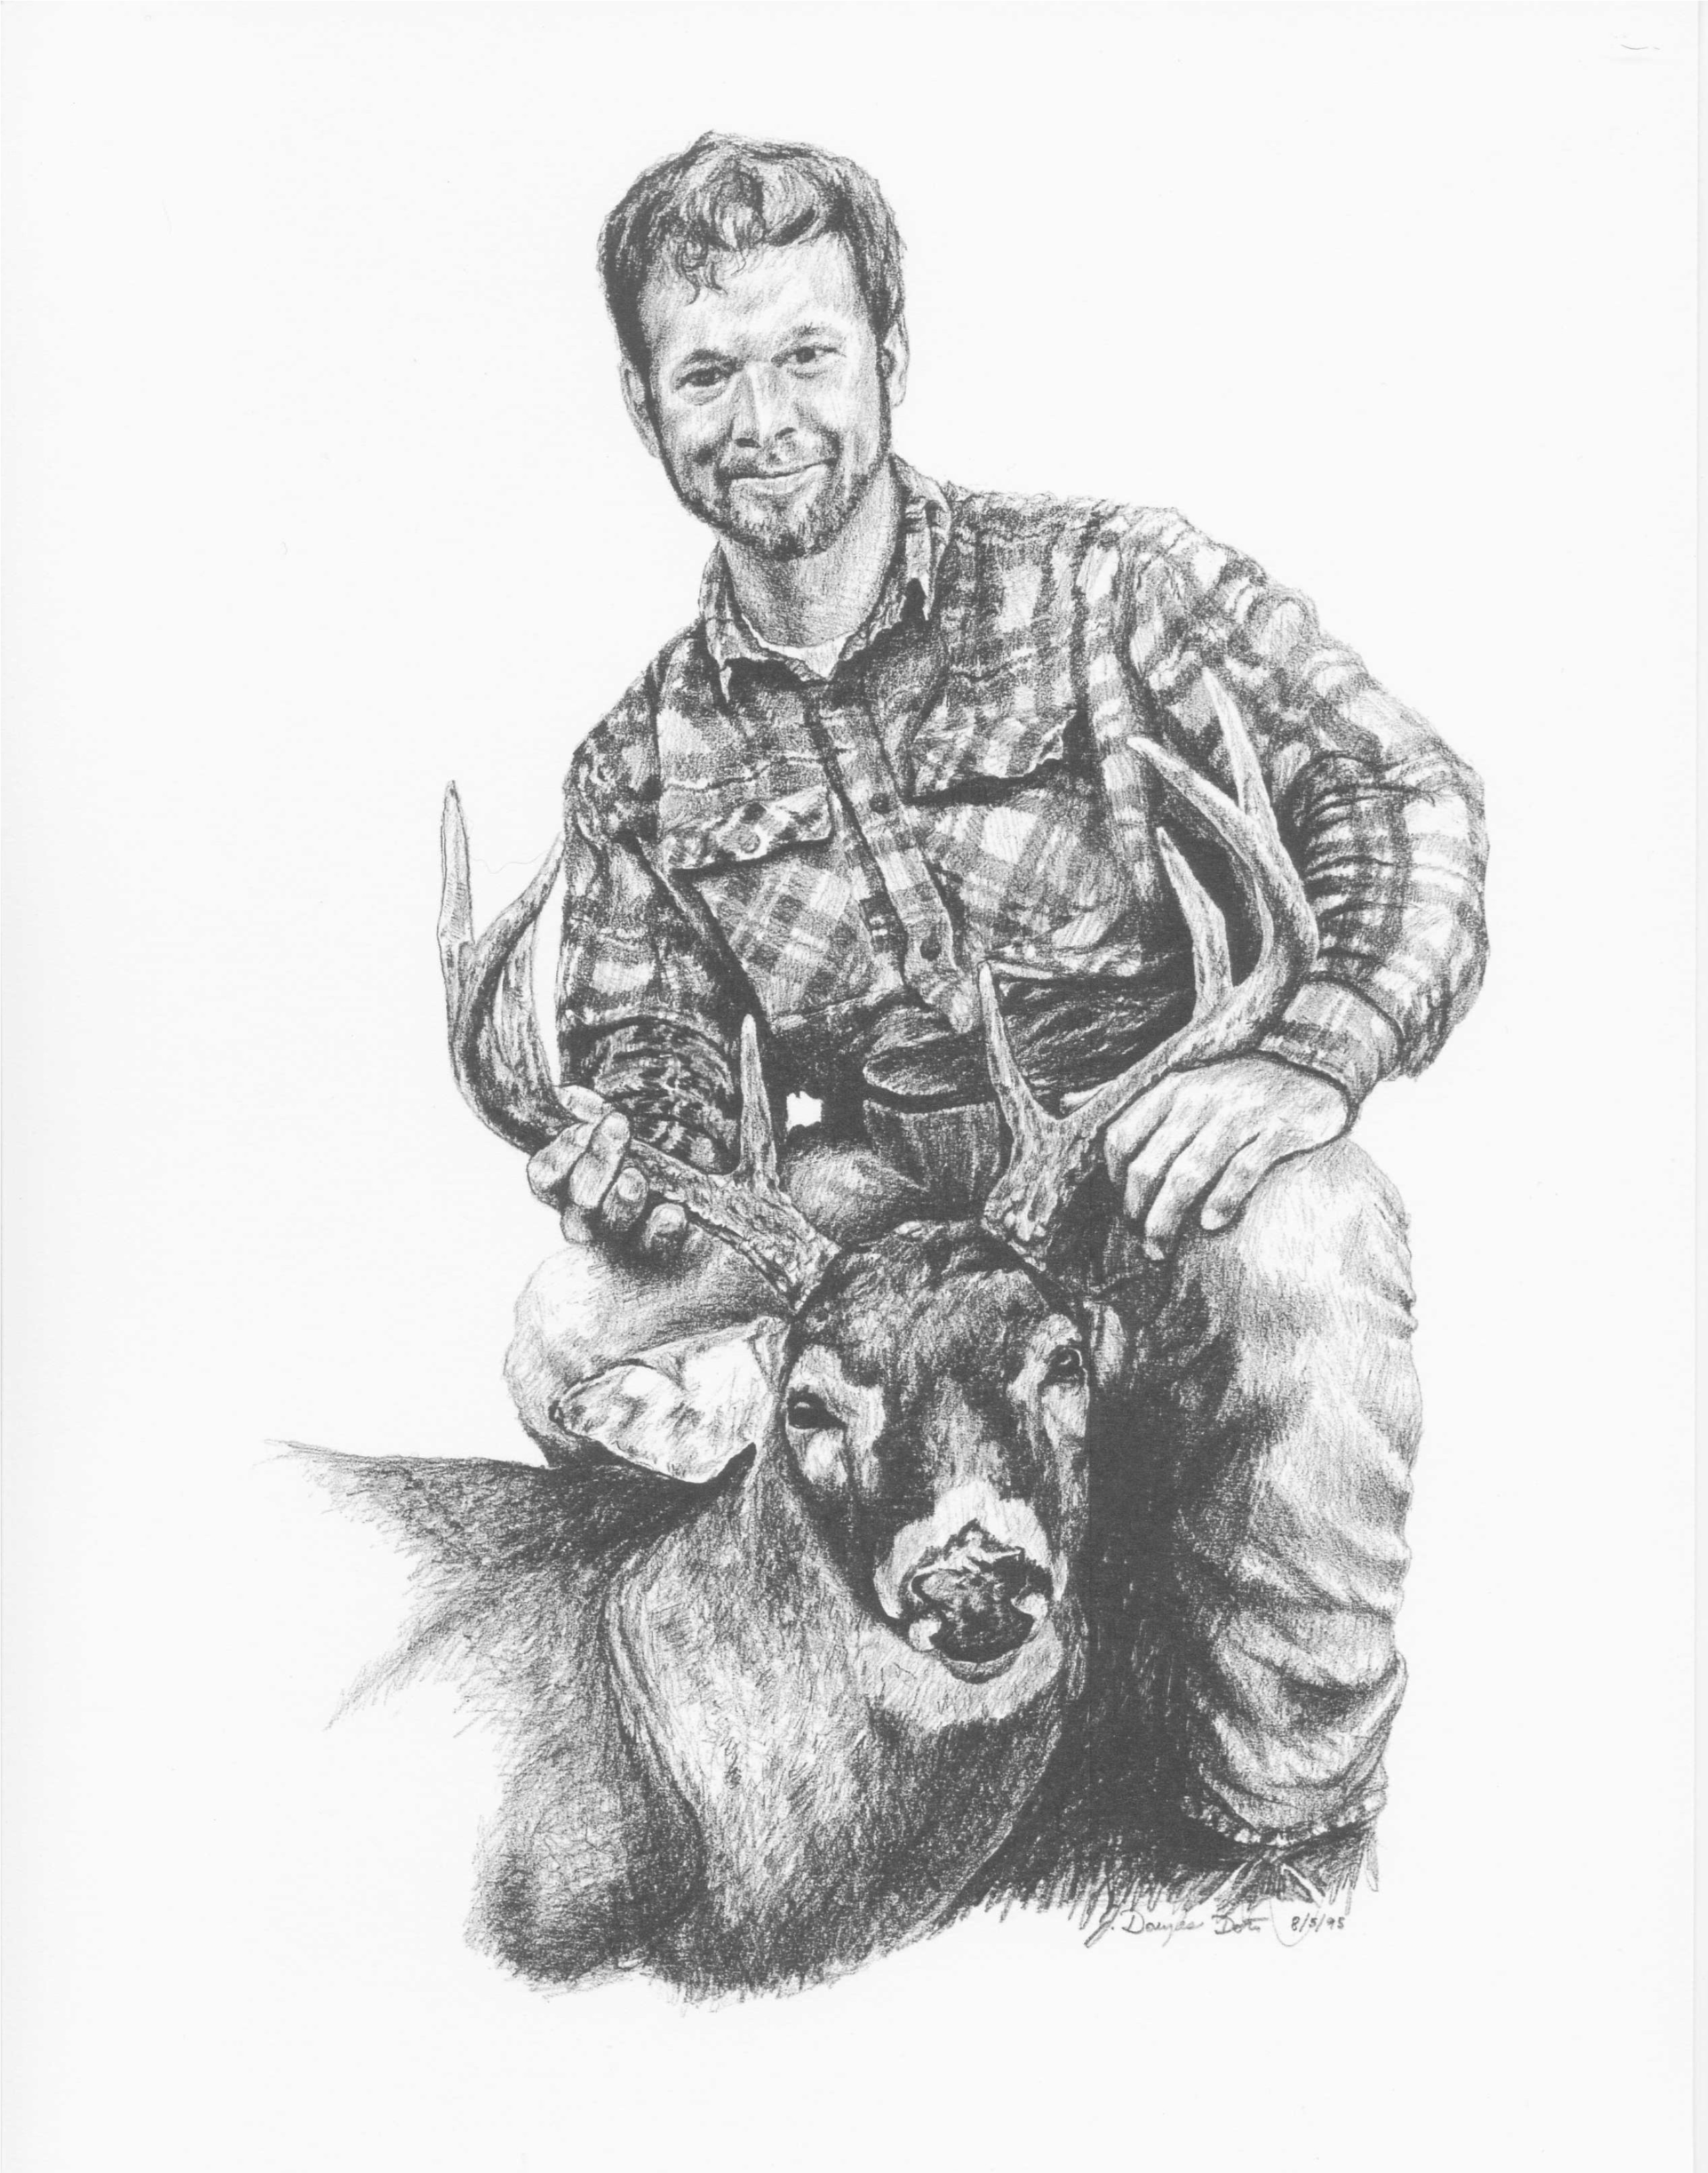 Drawn hunting whitetail deer And Services buck whitetail Whitetail